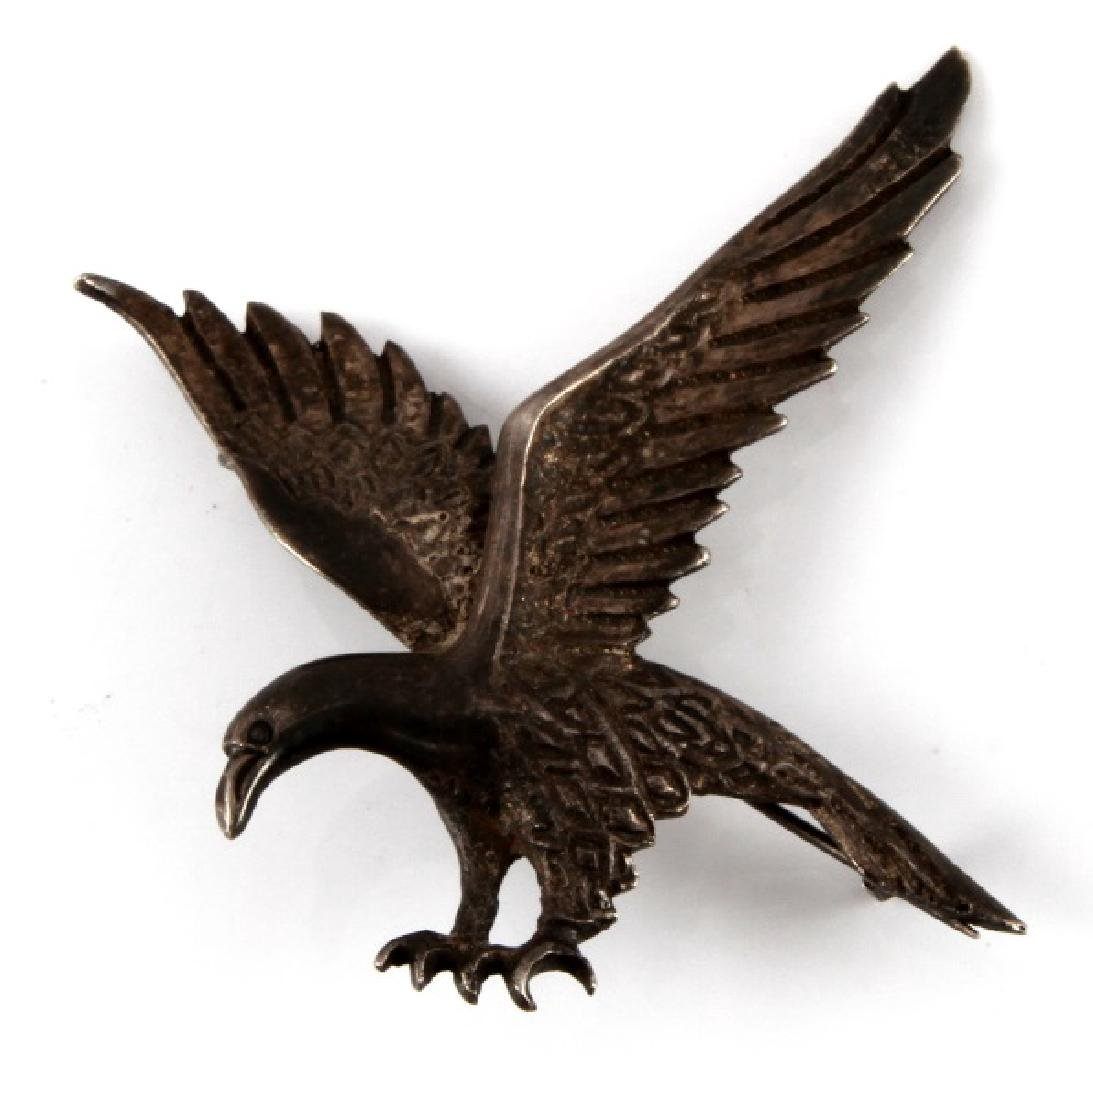 GERMAN WWII 3RD REICH SILVER EAGLE BROOCH